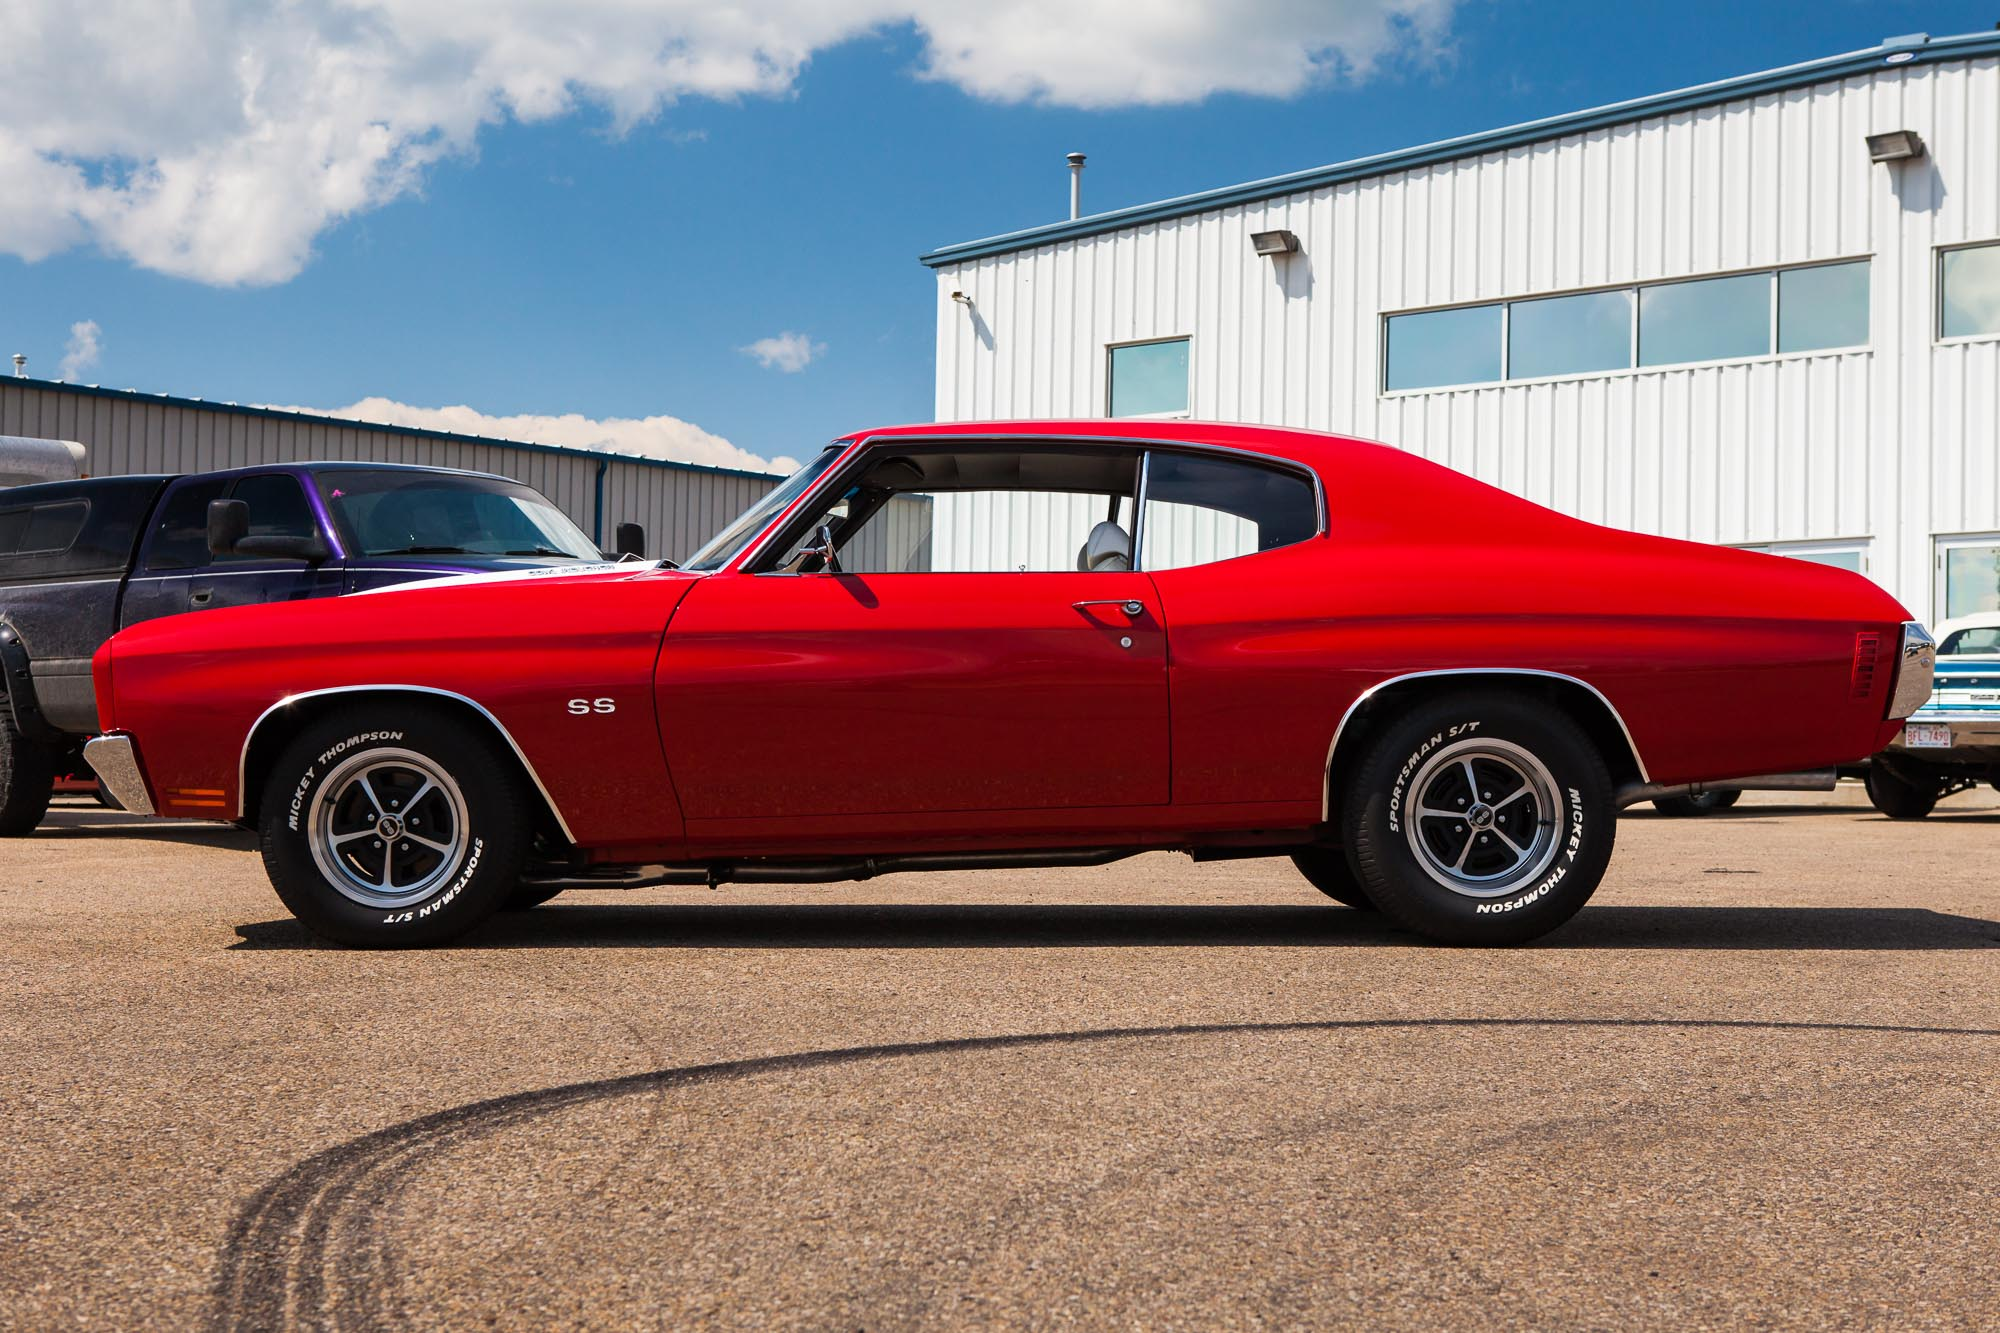 1970 Chevelle SS - The Iron Garage